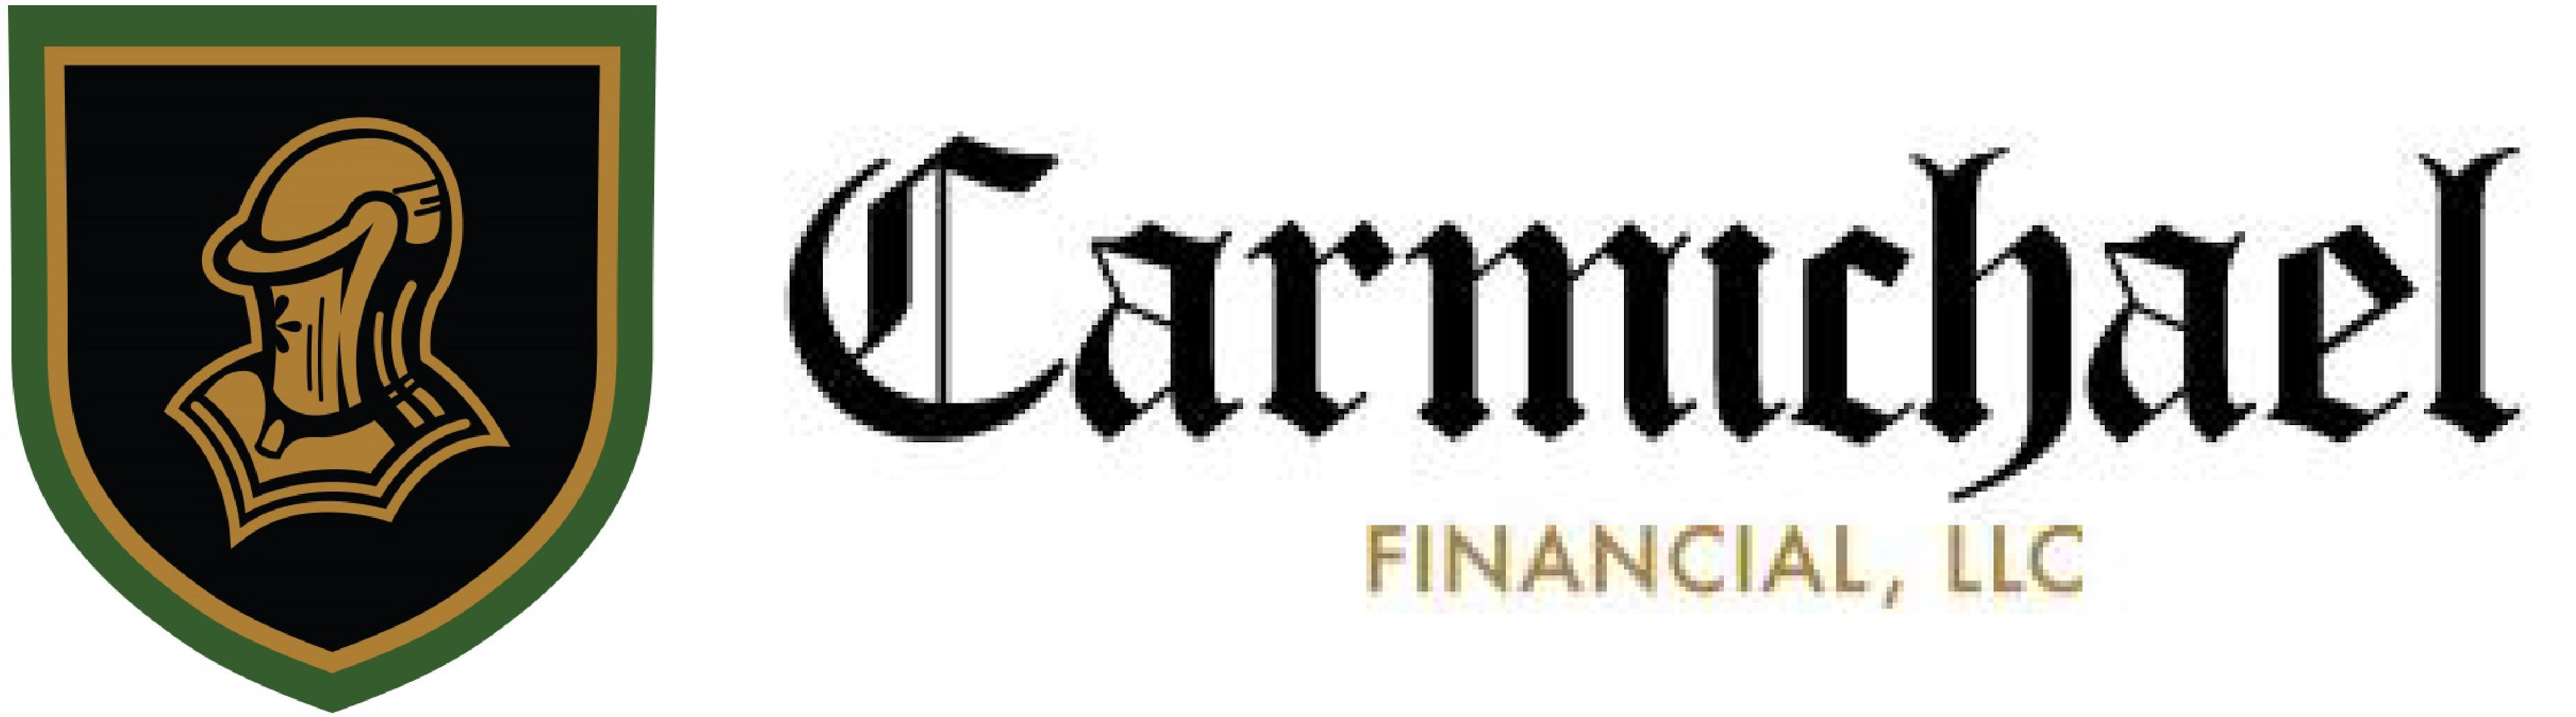 Logo for Carmichael Financial, LLC